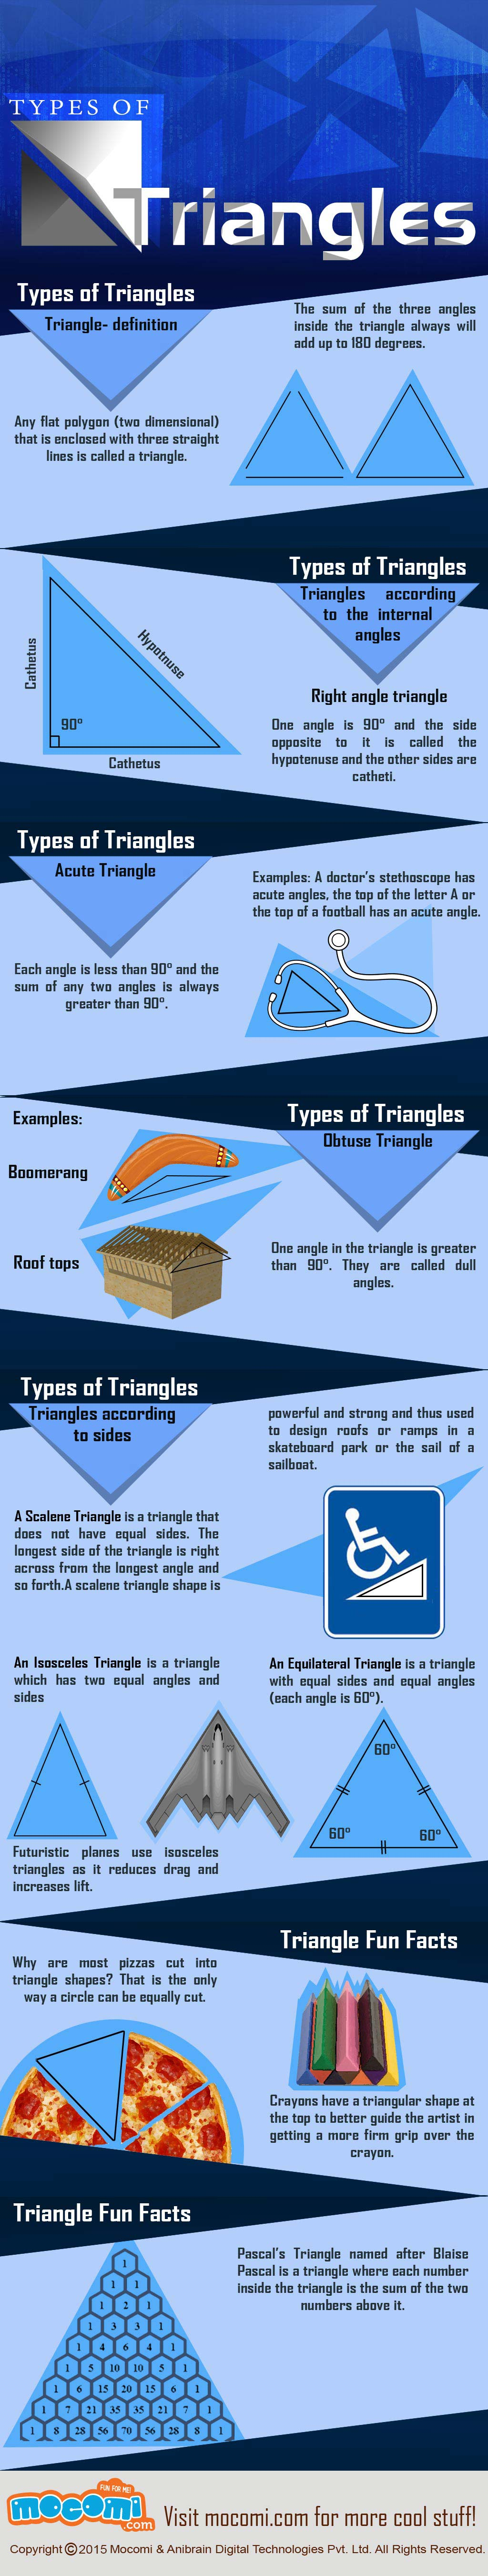 Types Of Triangles And Their Properties